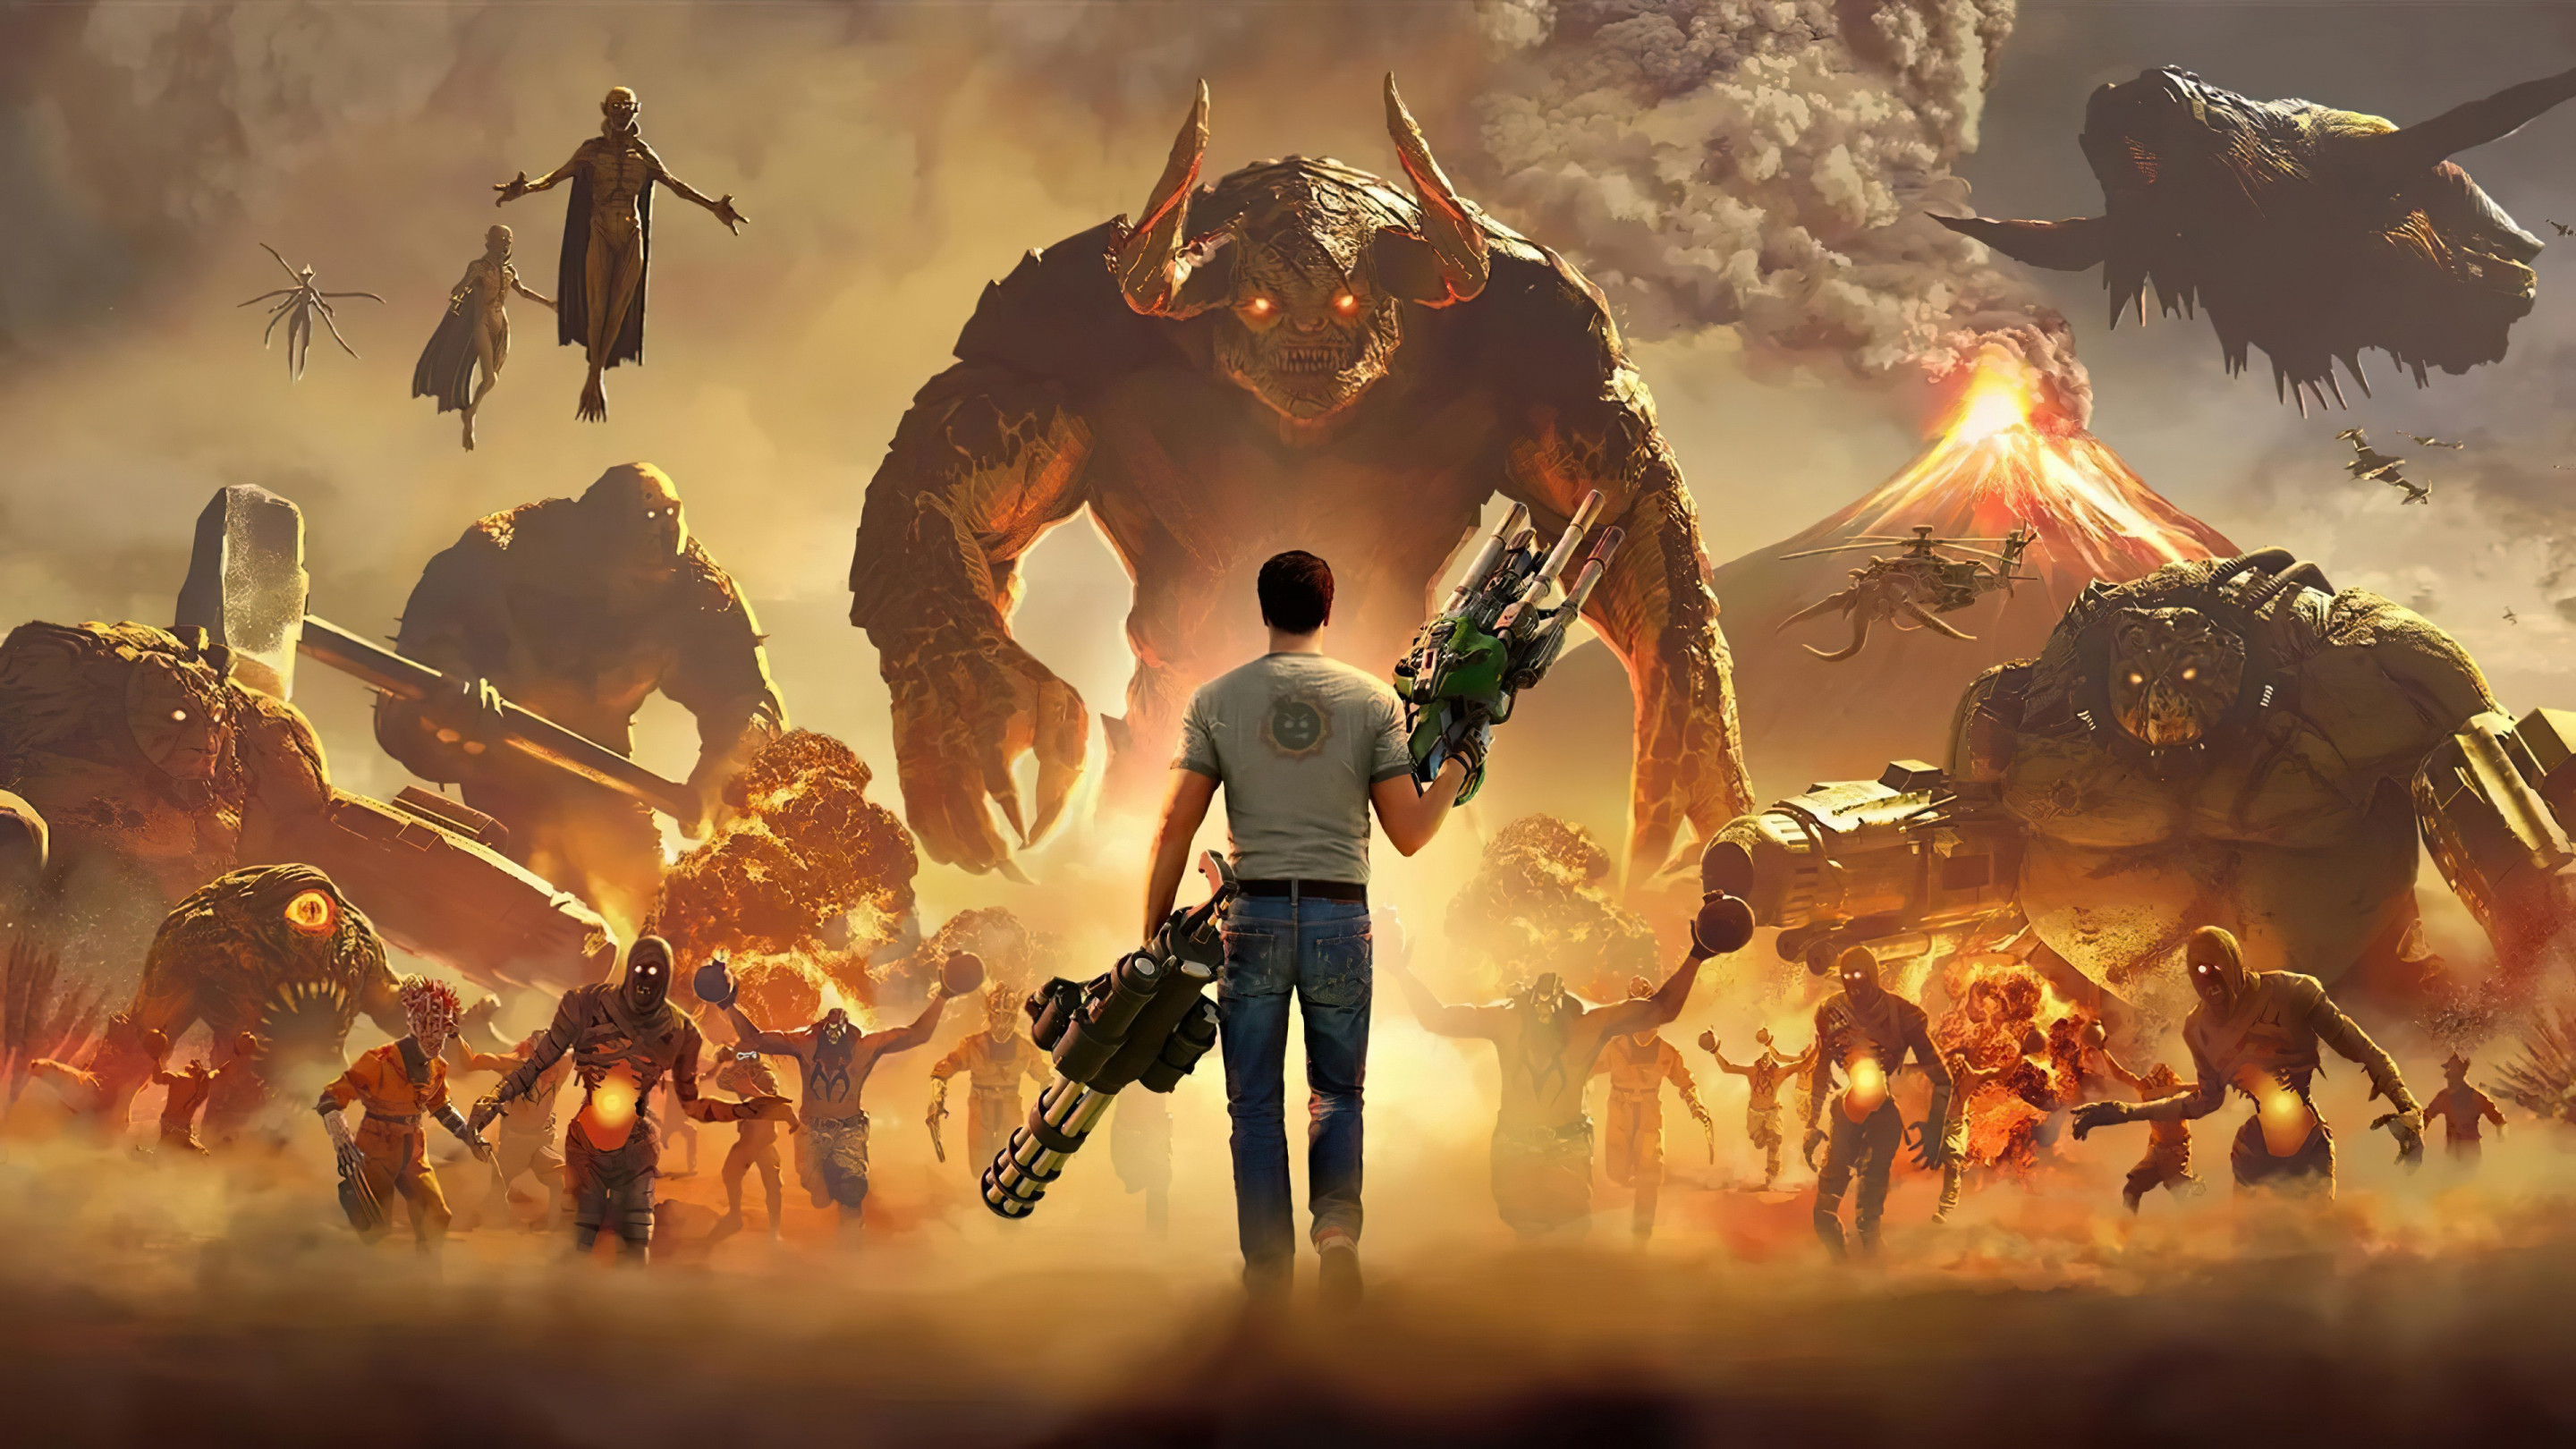 Serious Sam 4 wallpaper 2880x1620